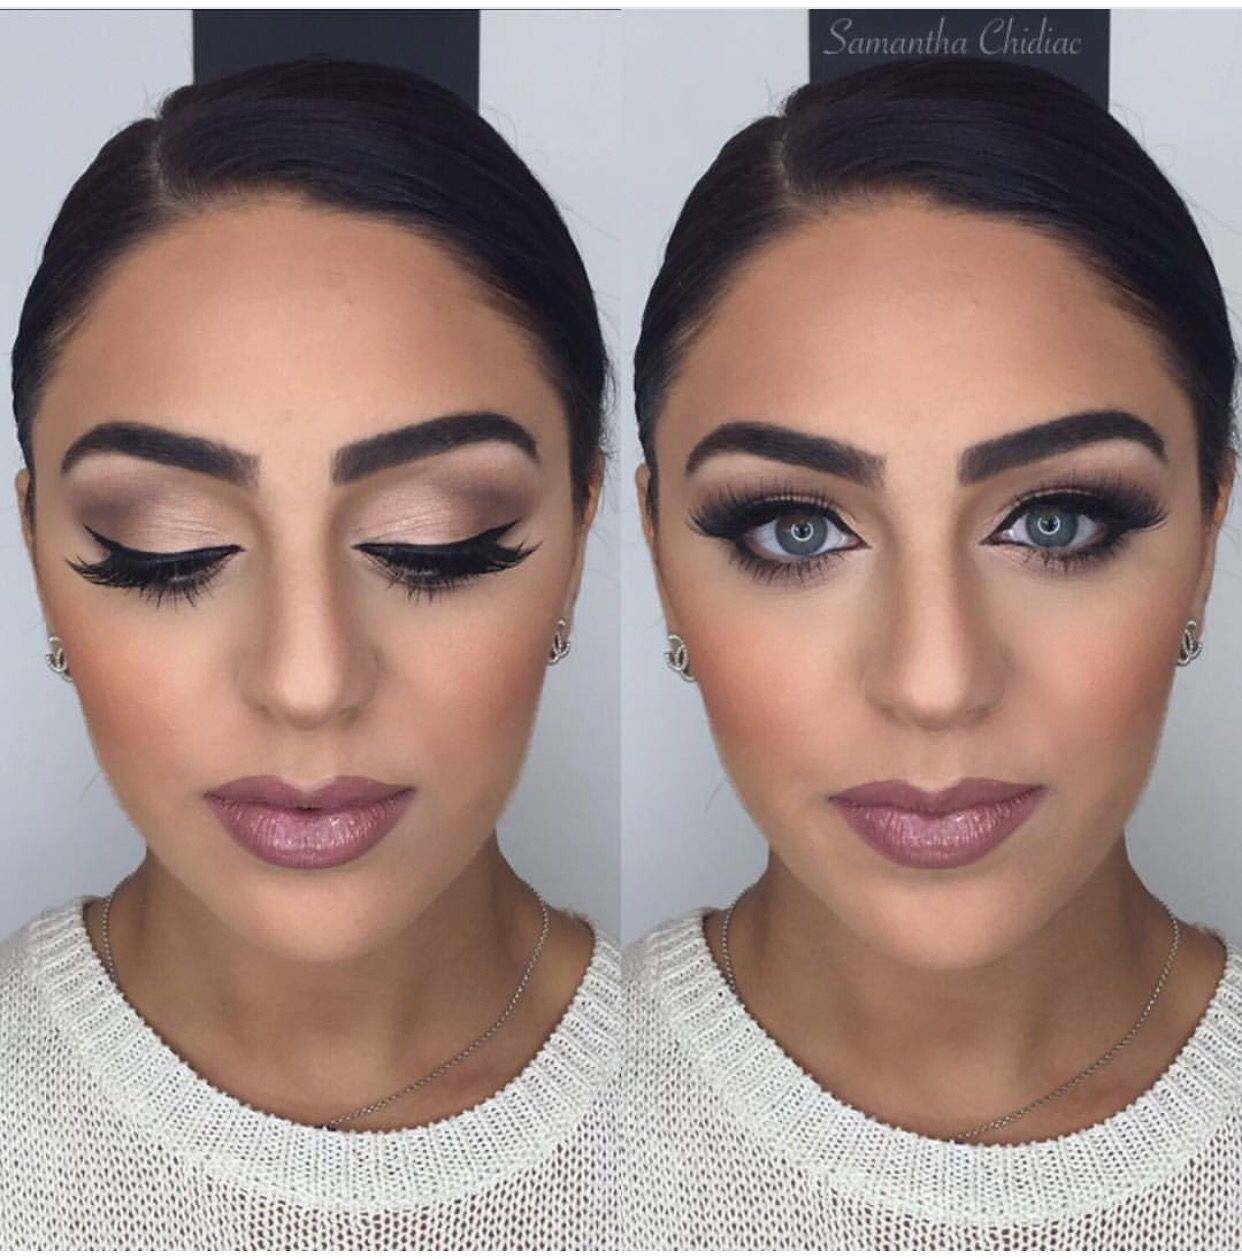 We Love This Look At Top Level Salon For Brides Makeup Trial Toplevelsalon Fb Ig Wedding Hair And Makeup Bridesmaid Makeup Makeup Trial